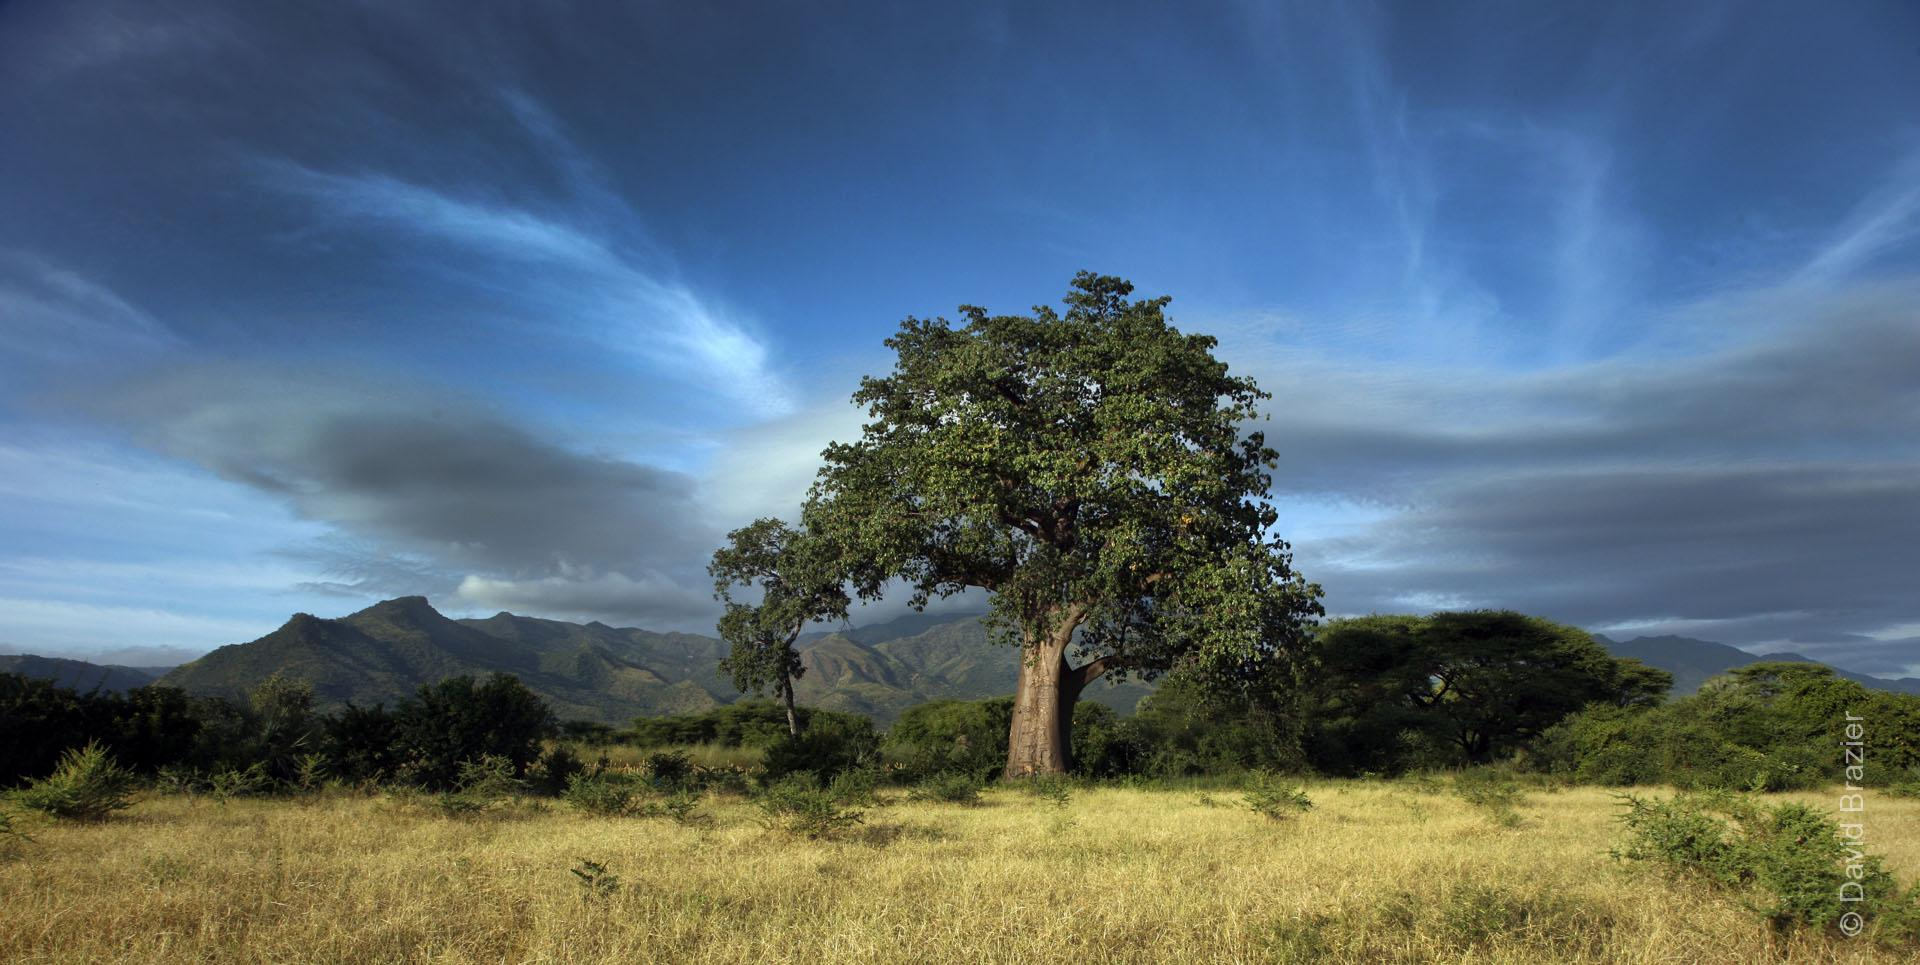 Large baobab tree with mountains in the background and dramatic sky